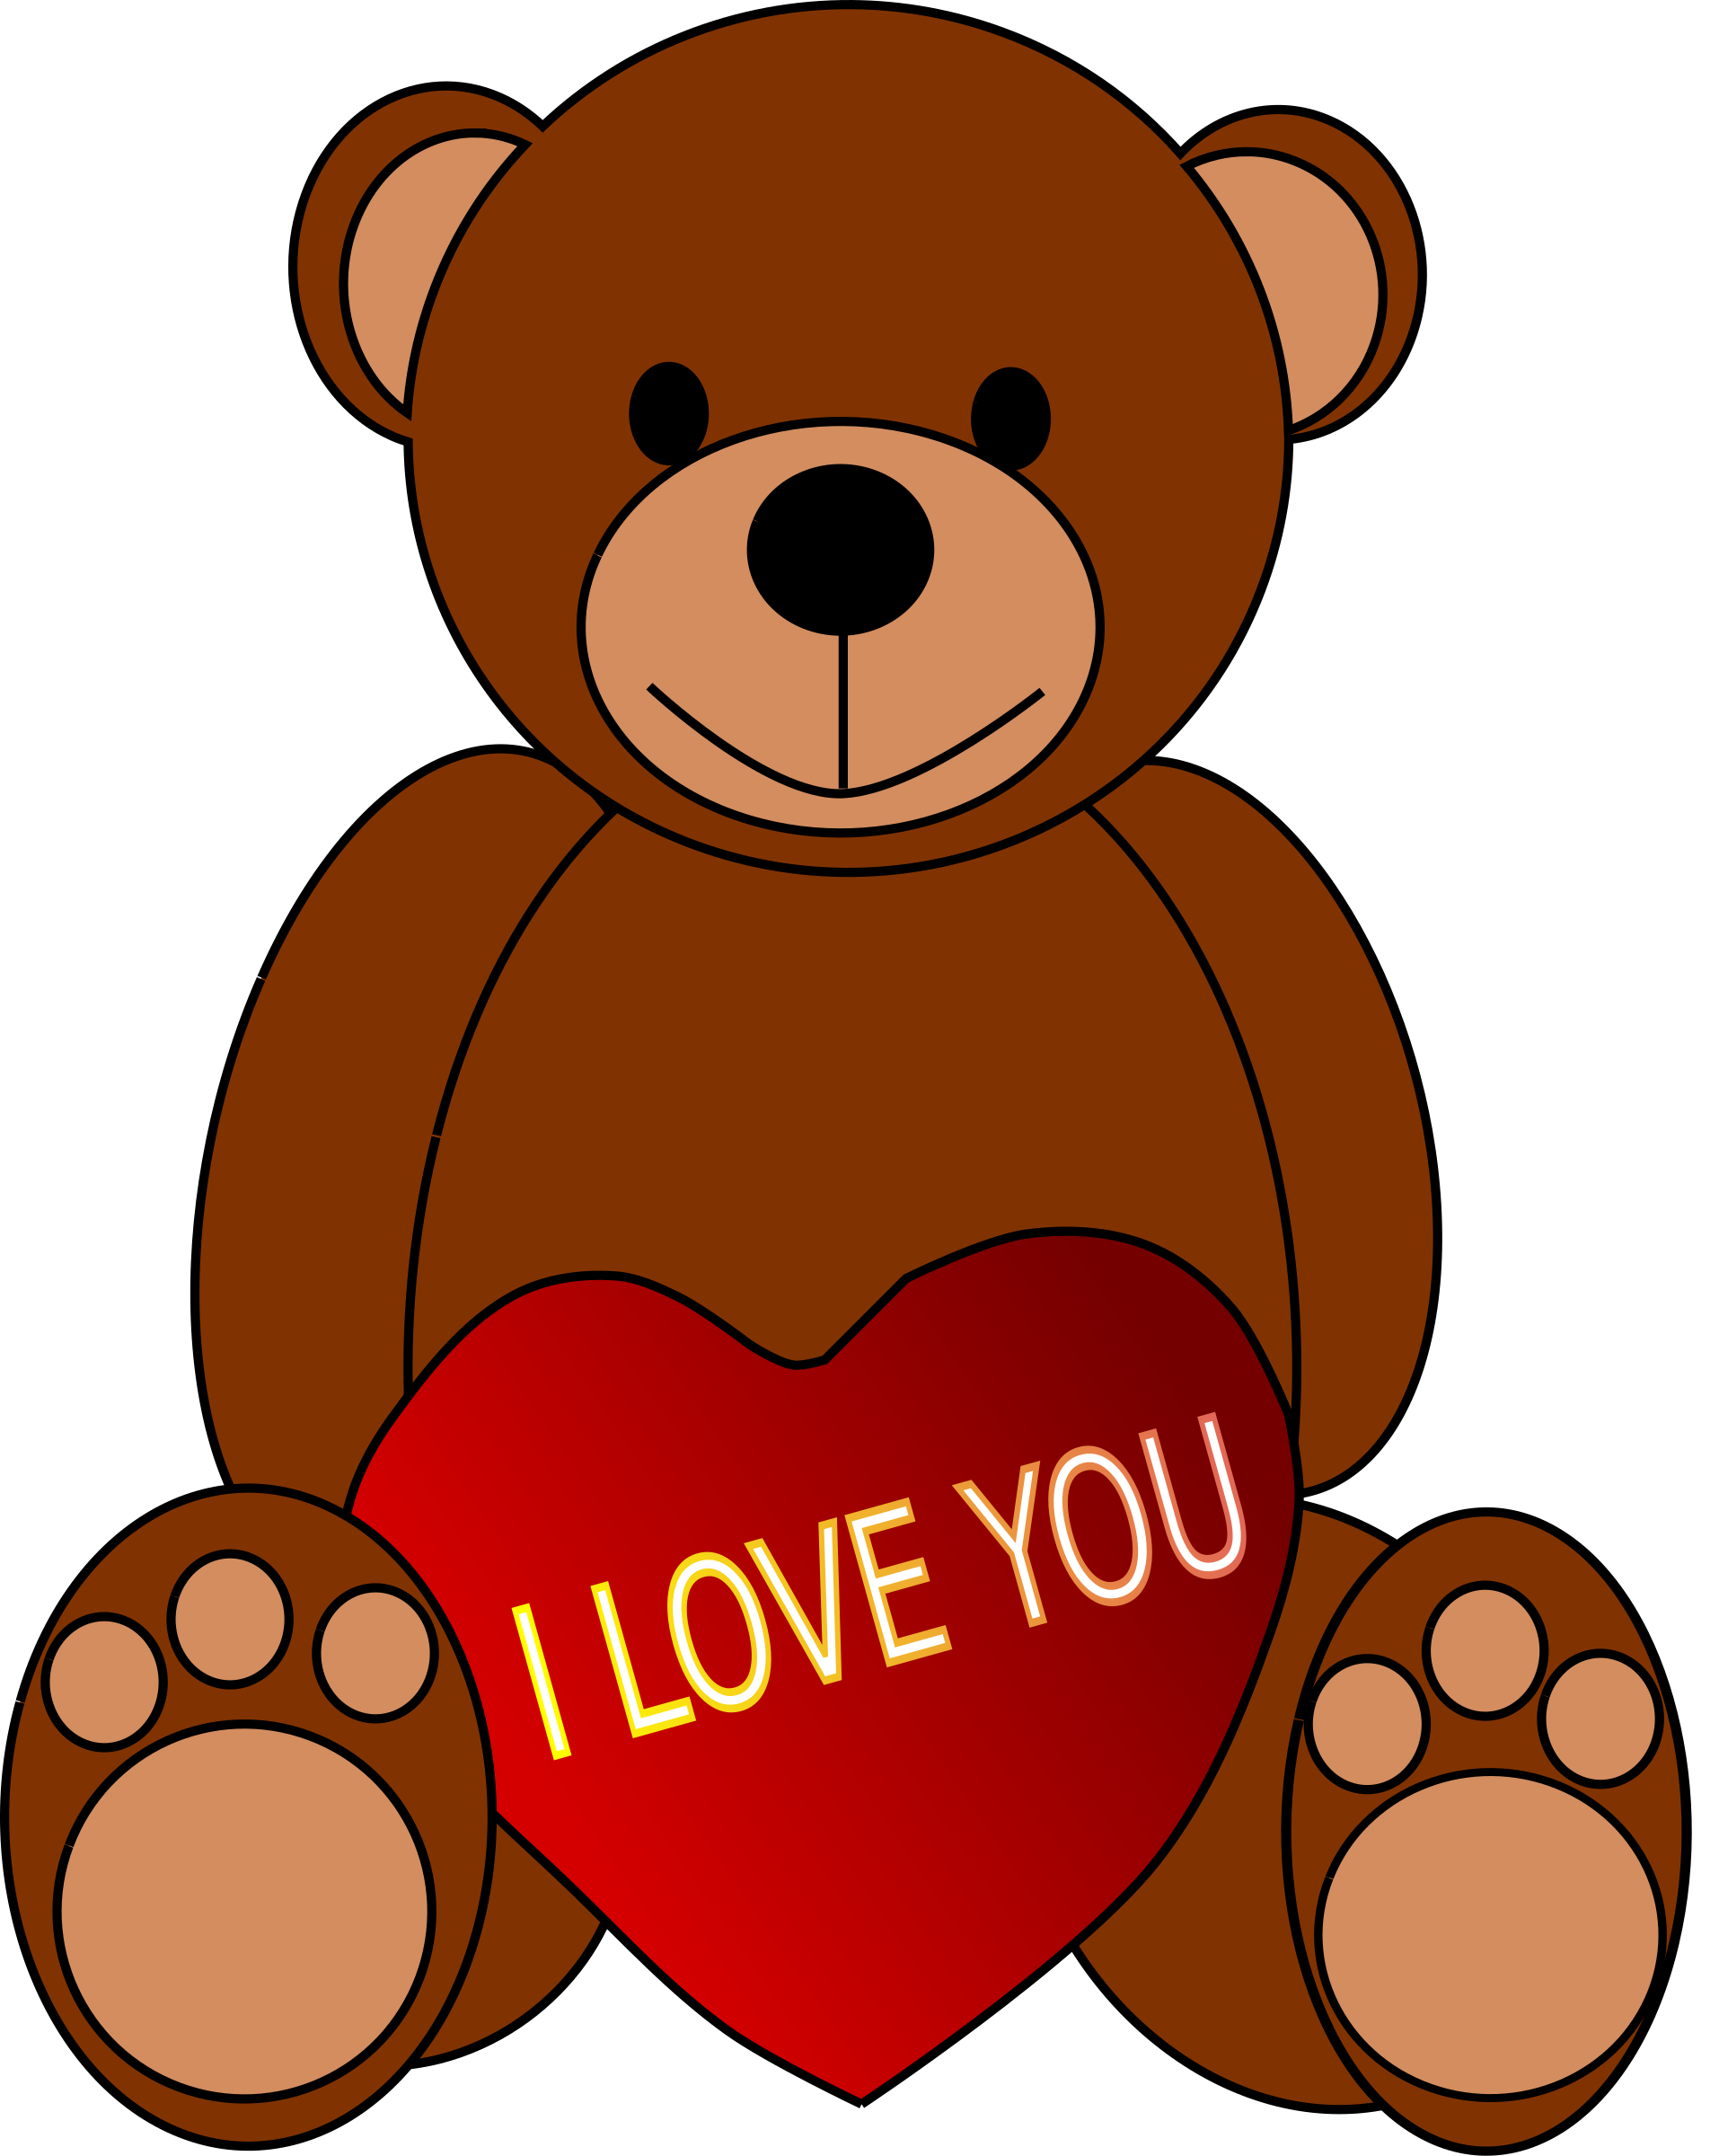 Valentine's Day Teddy Bear by artbejo